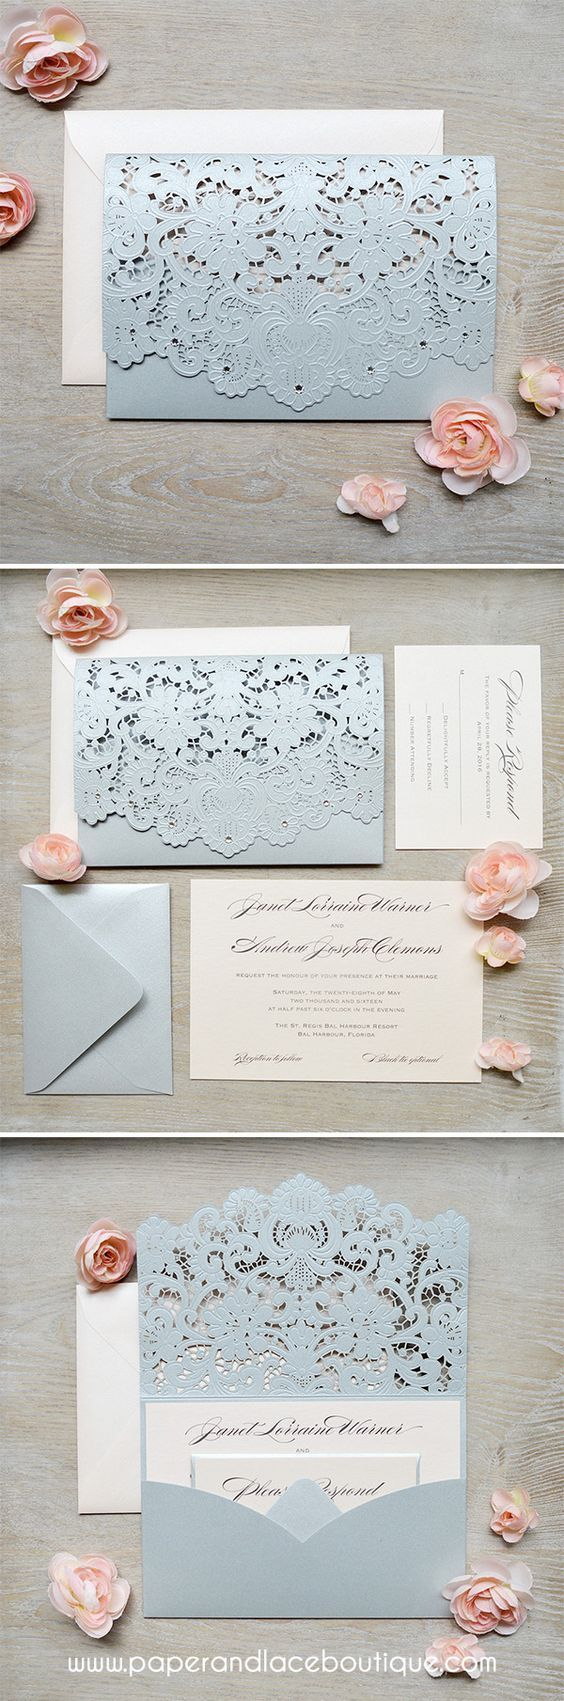 champagne blush wedding invitations%0A Best     Elegant invitations ideas on Pinterest   Wedding invitations   Floral wedding invitations and Floral invitation